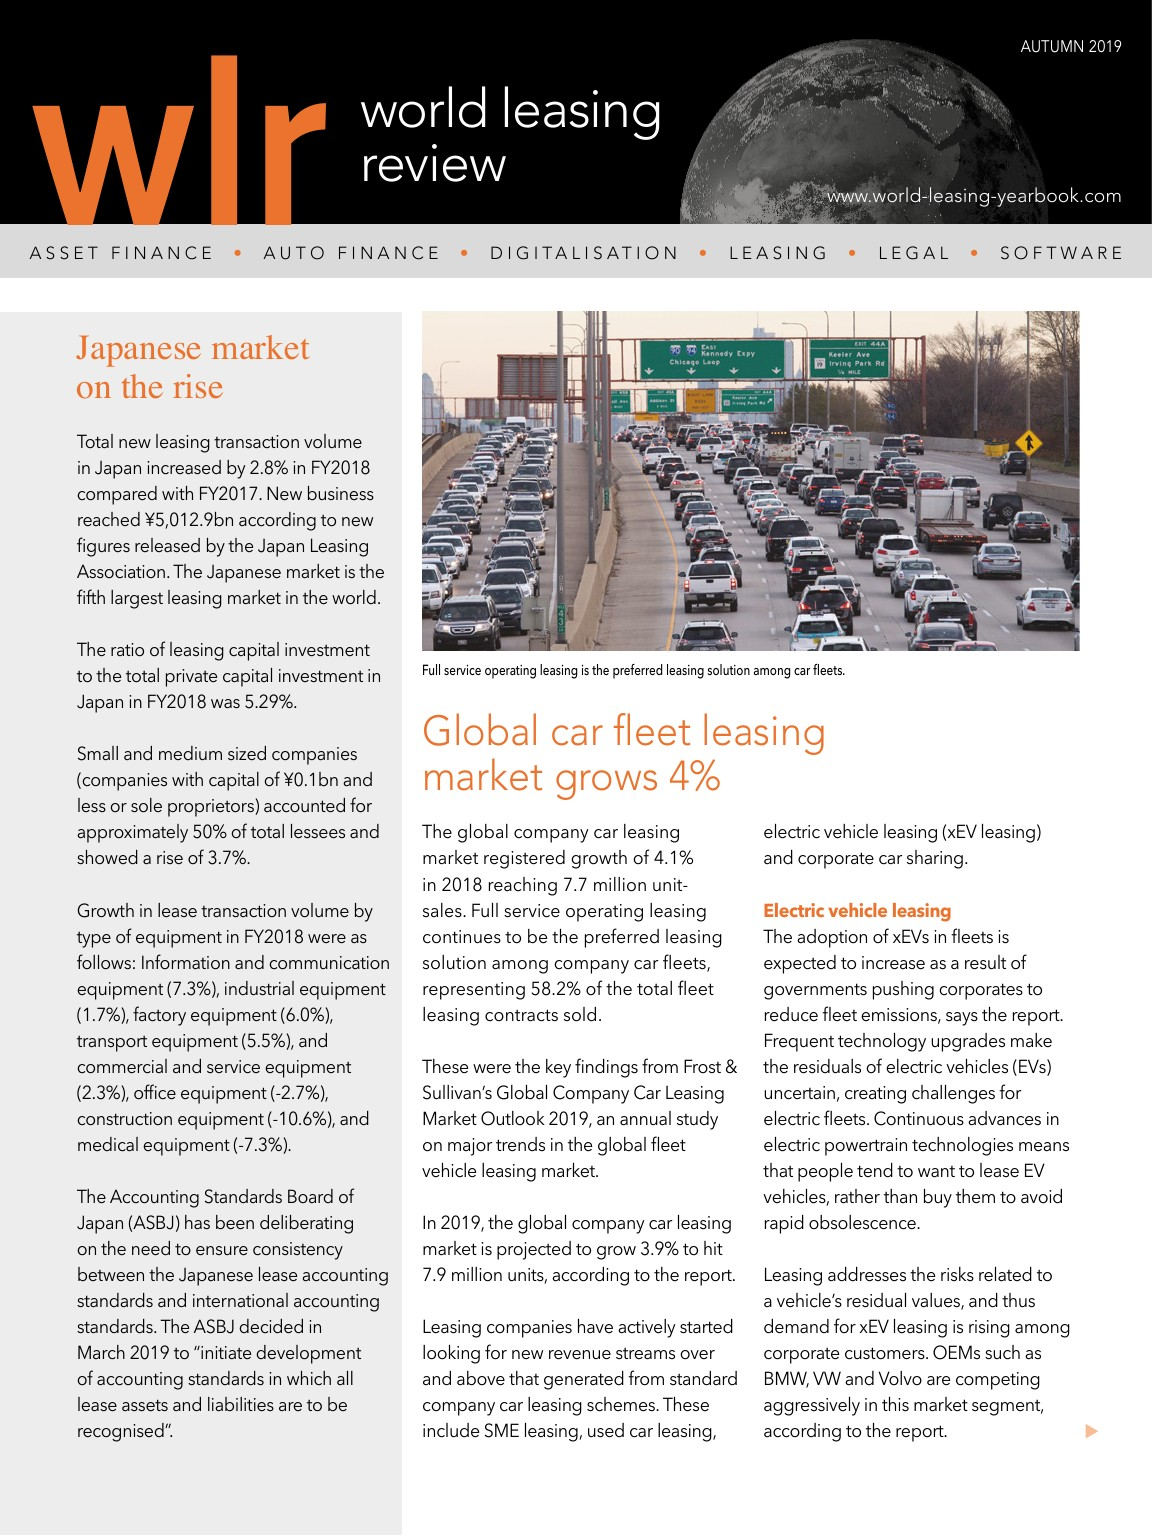 World Leasing Review Autumn Issue